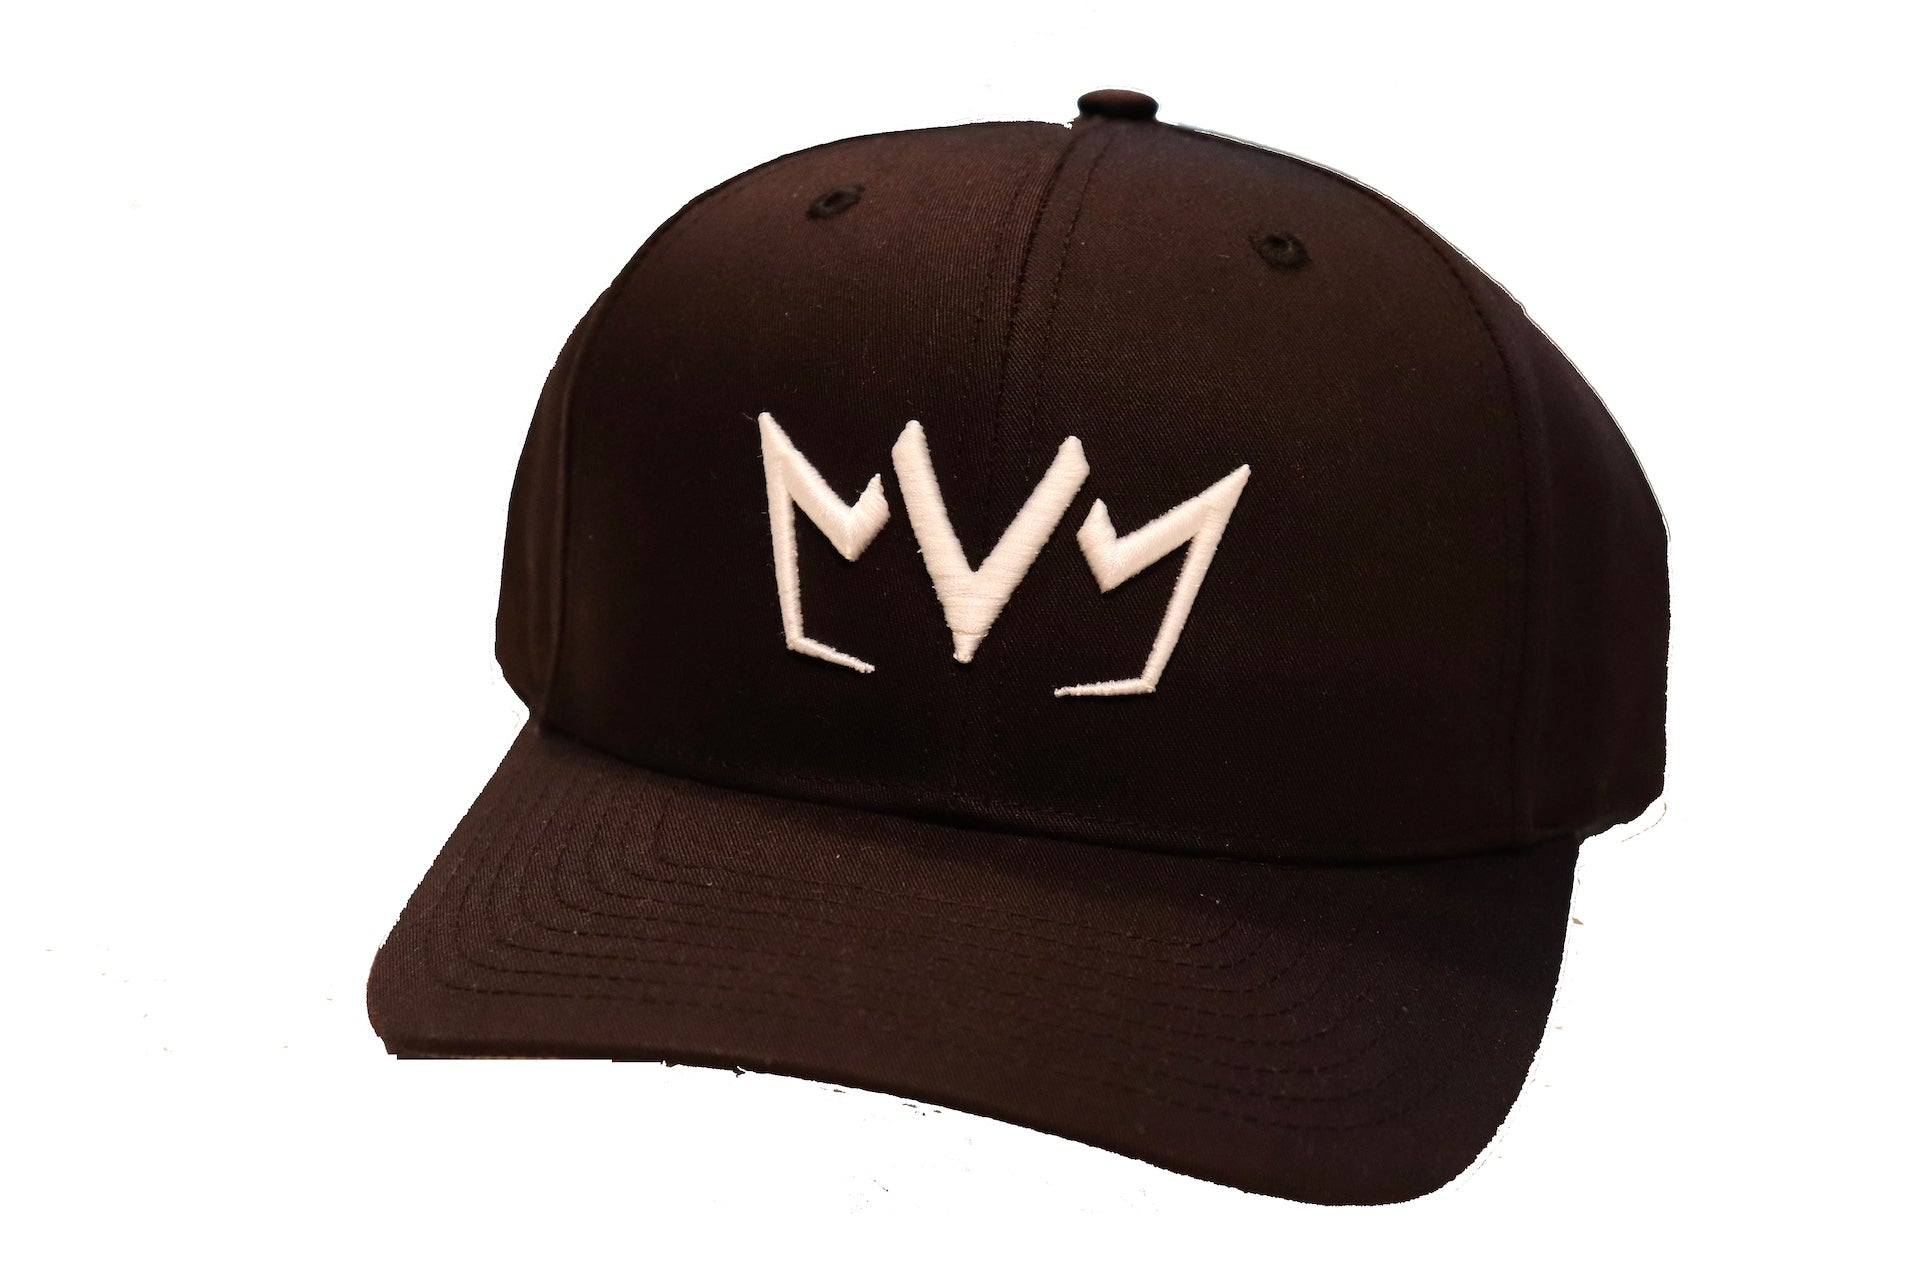 Black MVM Crown Snapback with the MVM Crown embroidered on the front.